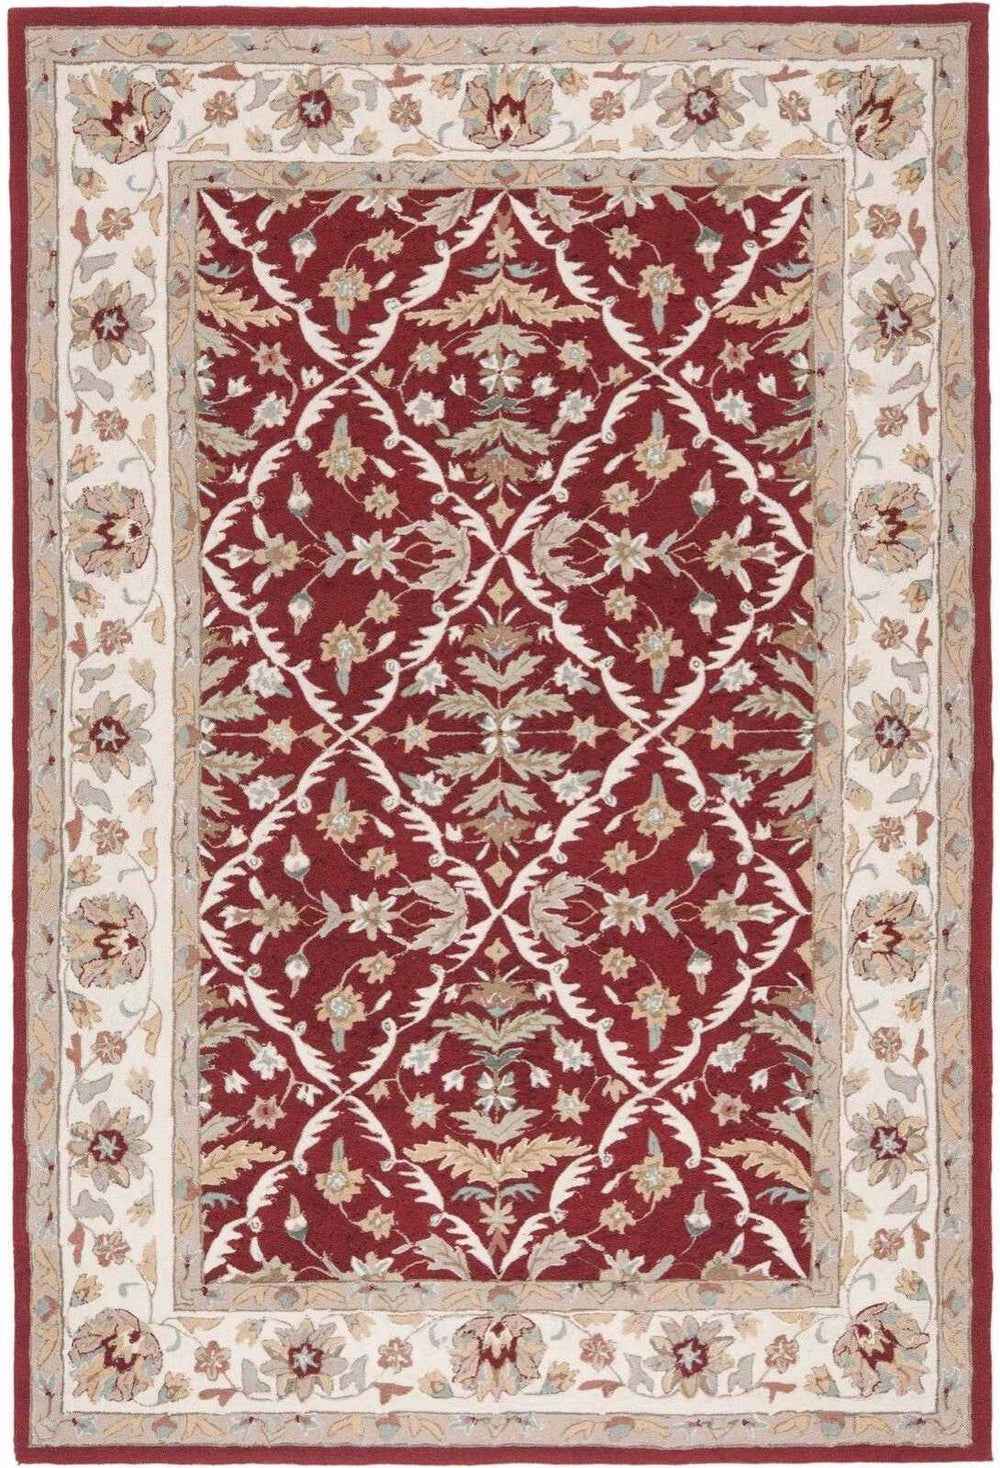 Safavieh Ez Care EZC717 Area Rug